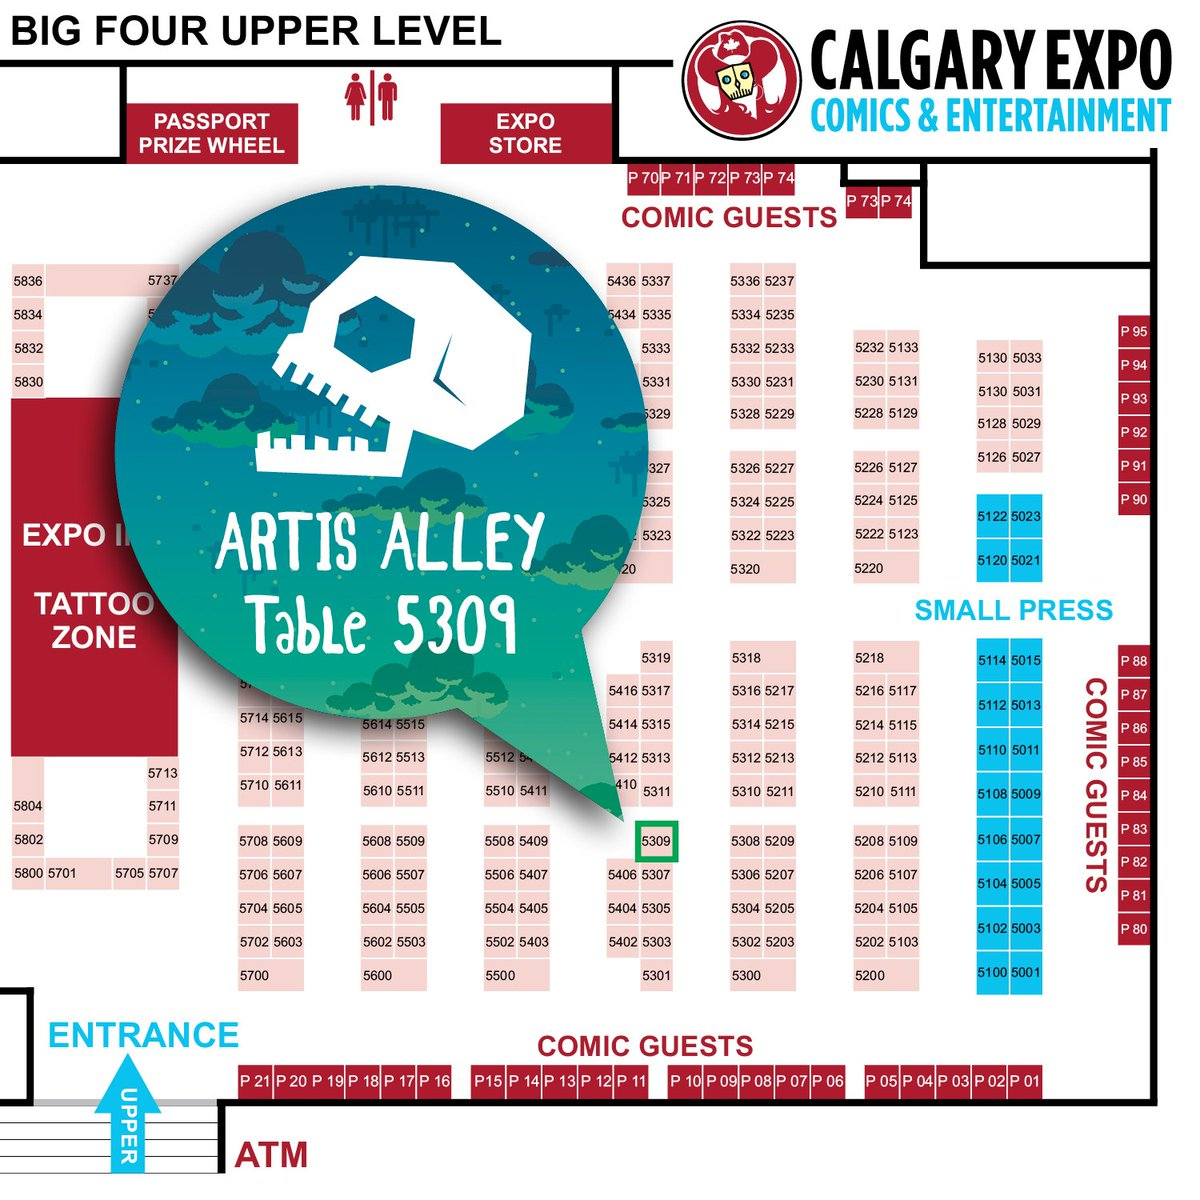 Find me at Calgary Expo, Artist Alley 5309!    #ArkLand #comics #graphicnovel #digitalart #digitalillustration #illustration #comicbook #indiecomics #comicbooks #fantasyart #scifi #scifiart #GiantsWell #comiccon #calgaryexpo #calgaryexpo2018<br>http://pic.twitter.com/jpuWV9gZd7